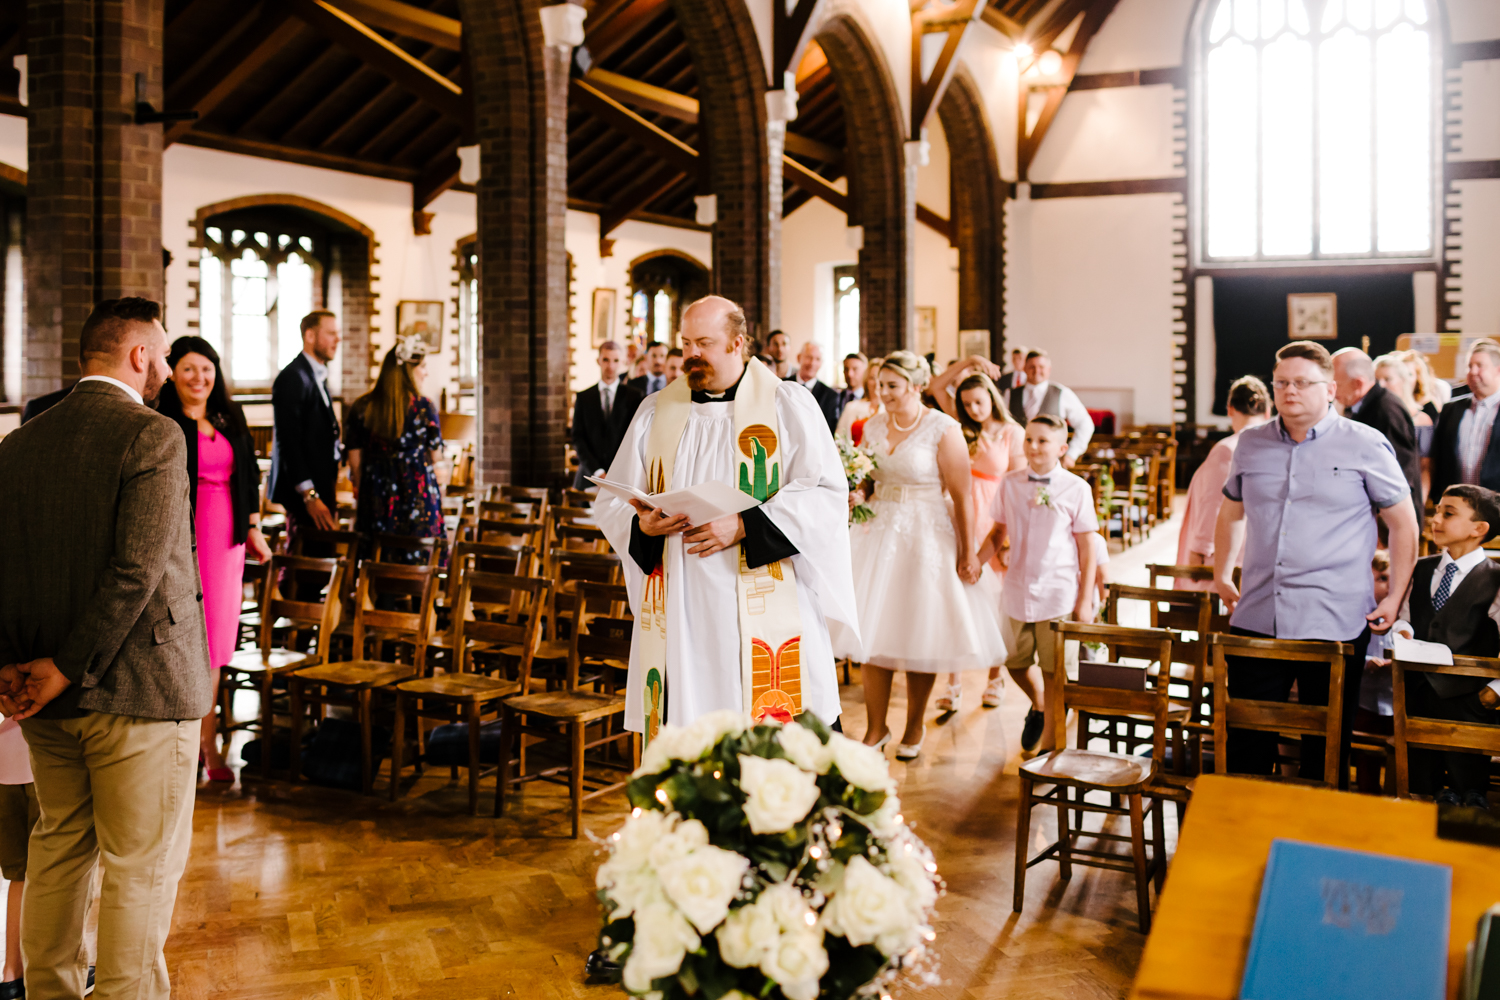 north-wales-wedding-photographer-176.jpg